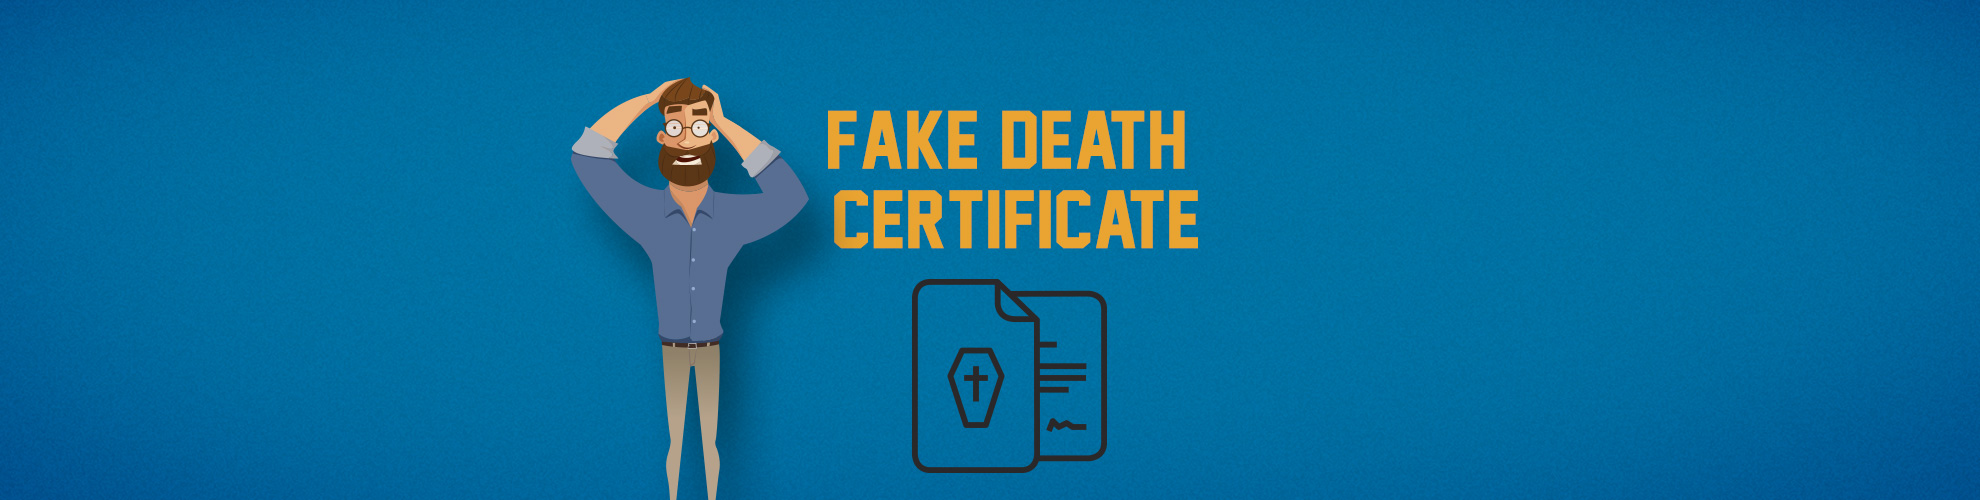 Buy Fake Death Certificates Online Novelty Death Certificate For Work